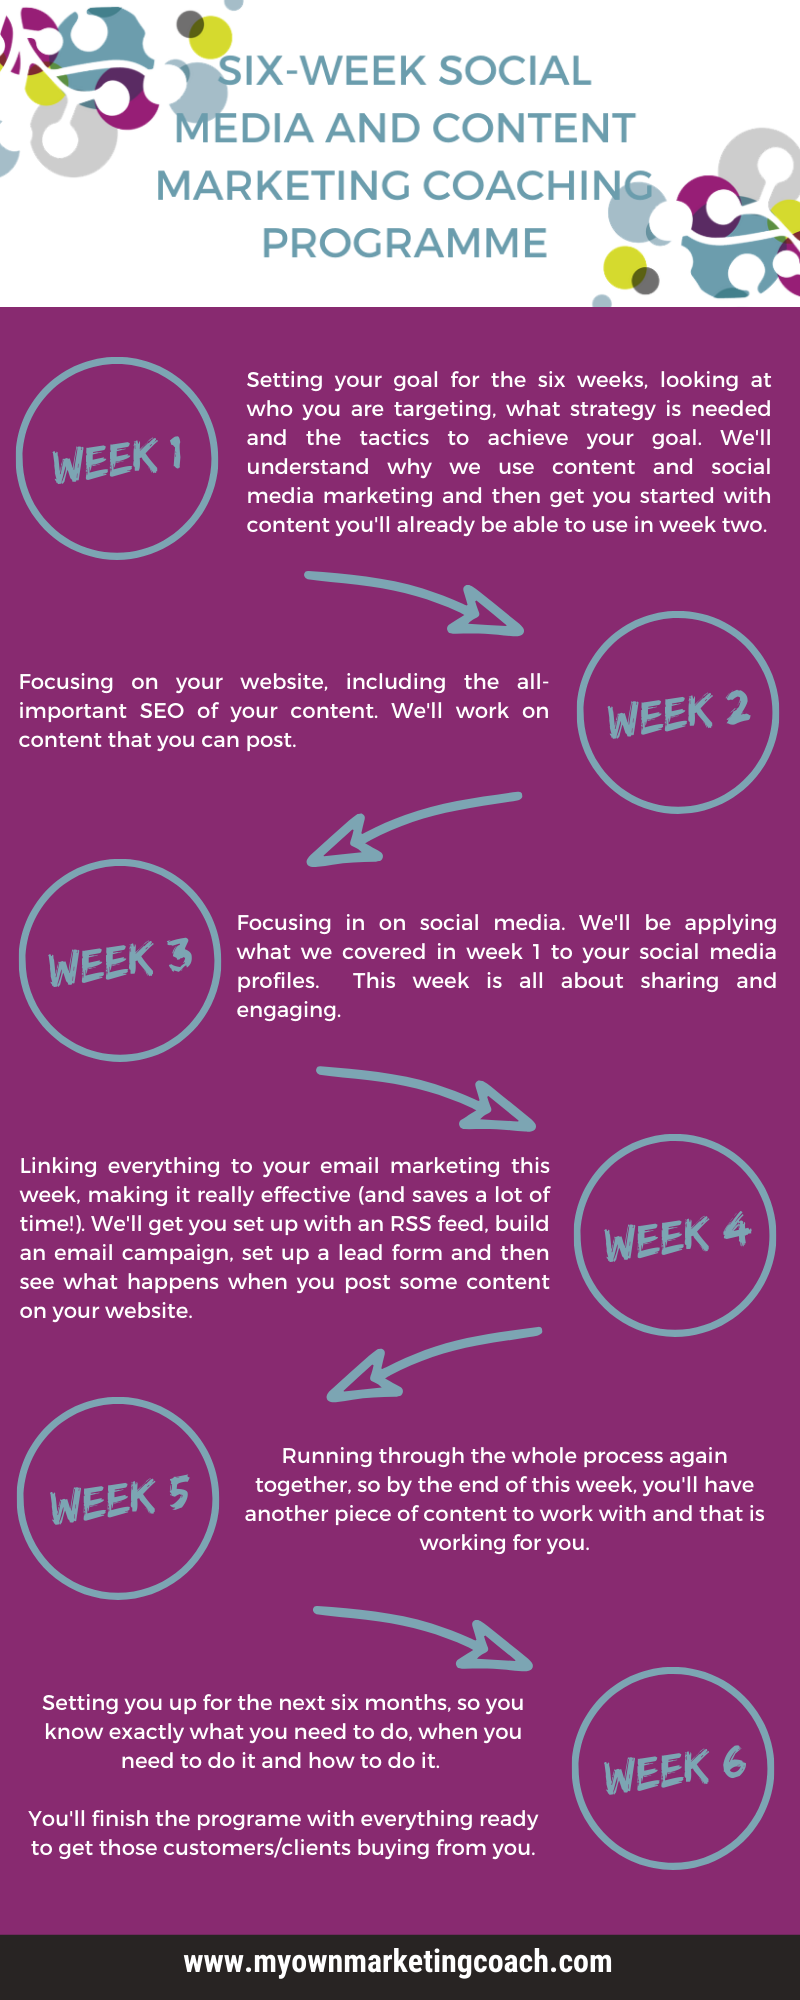 Six-week social media and content marketing coaching programme - My Own Marketing Coach